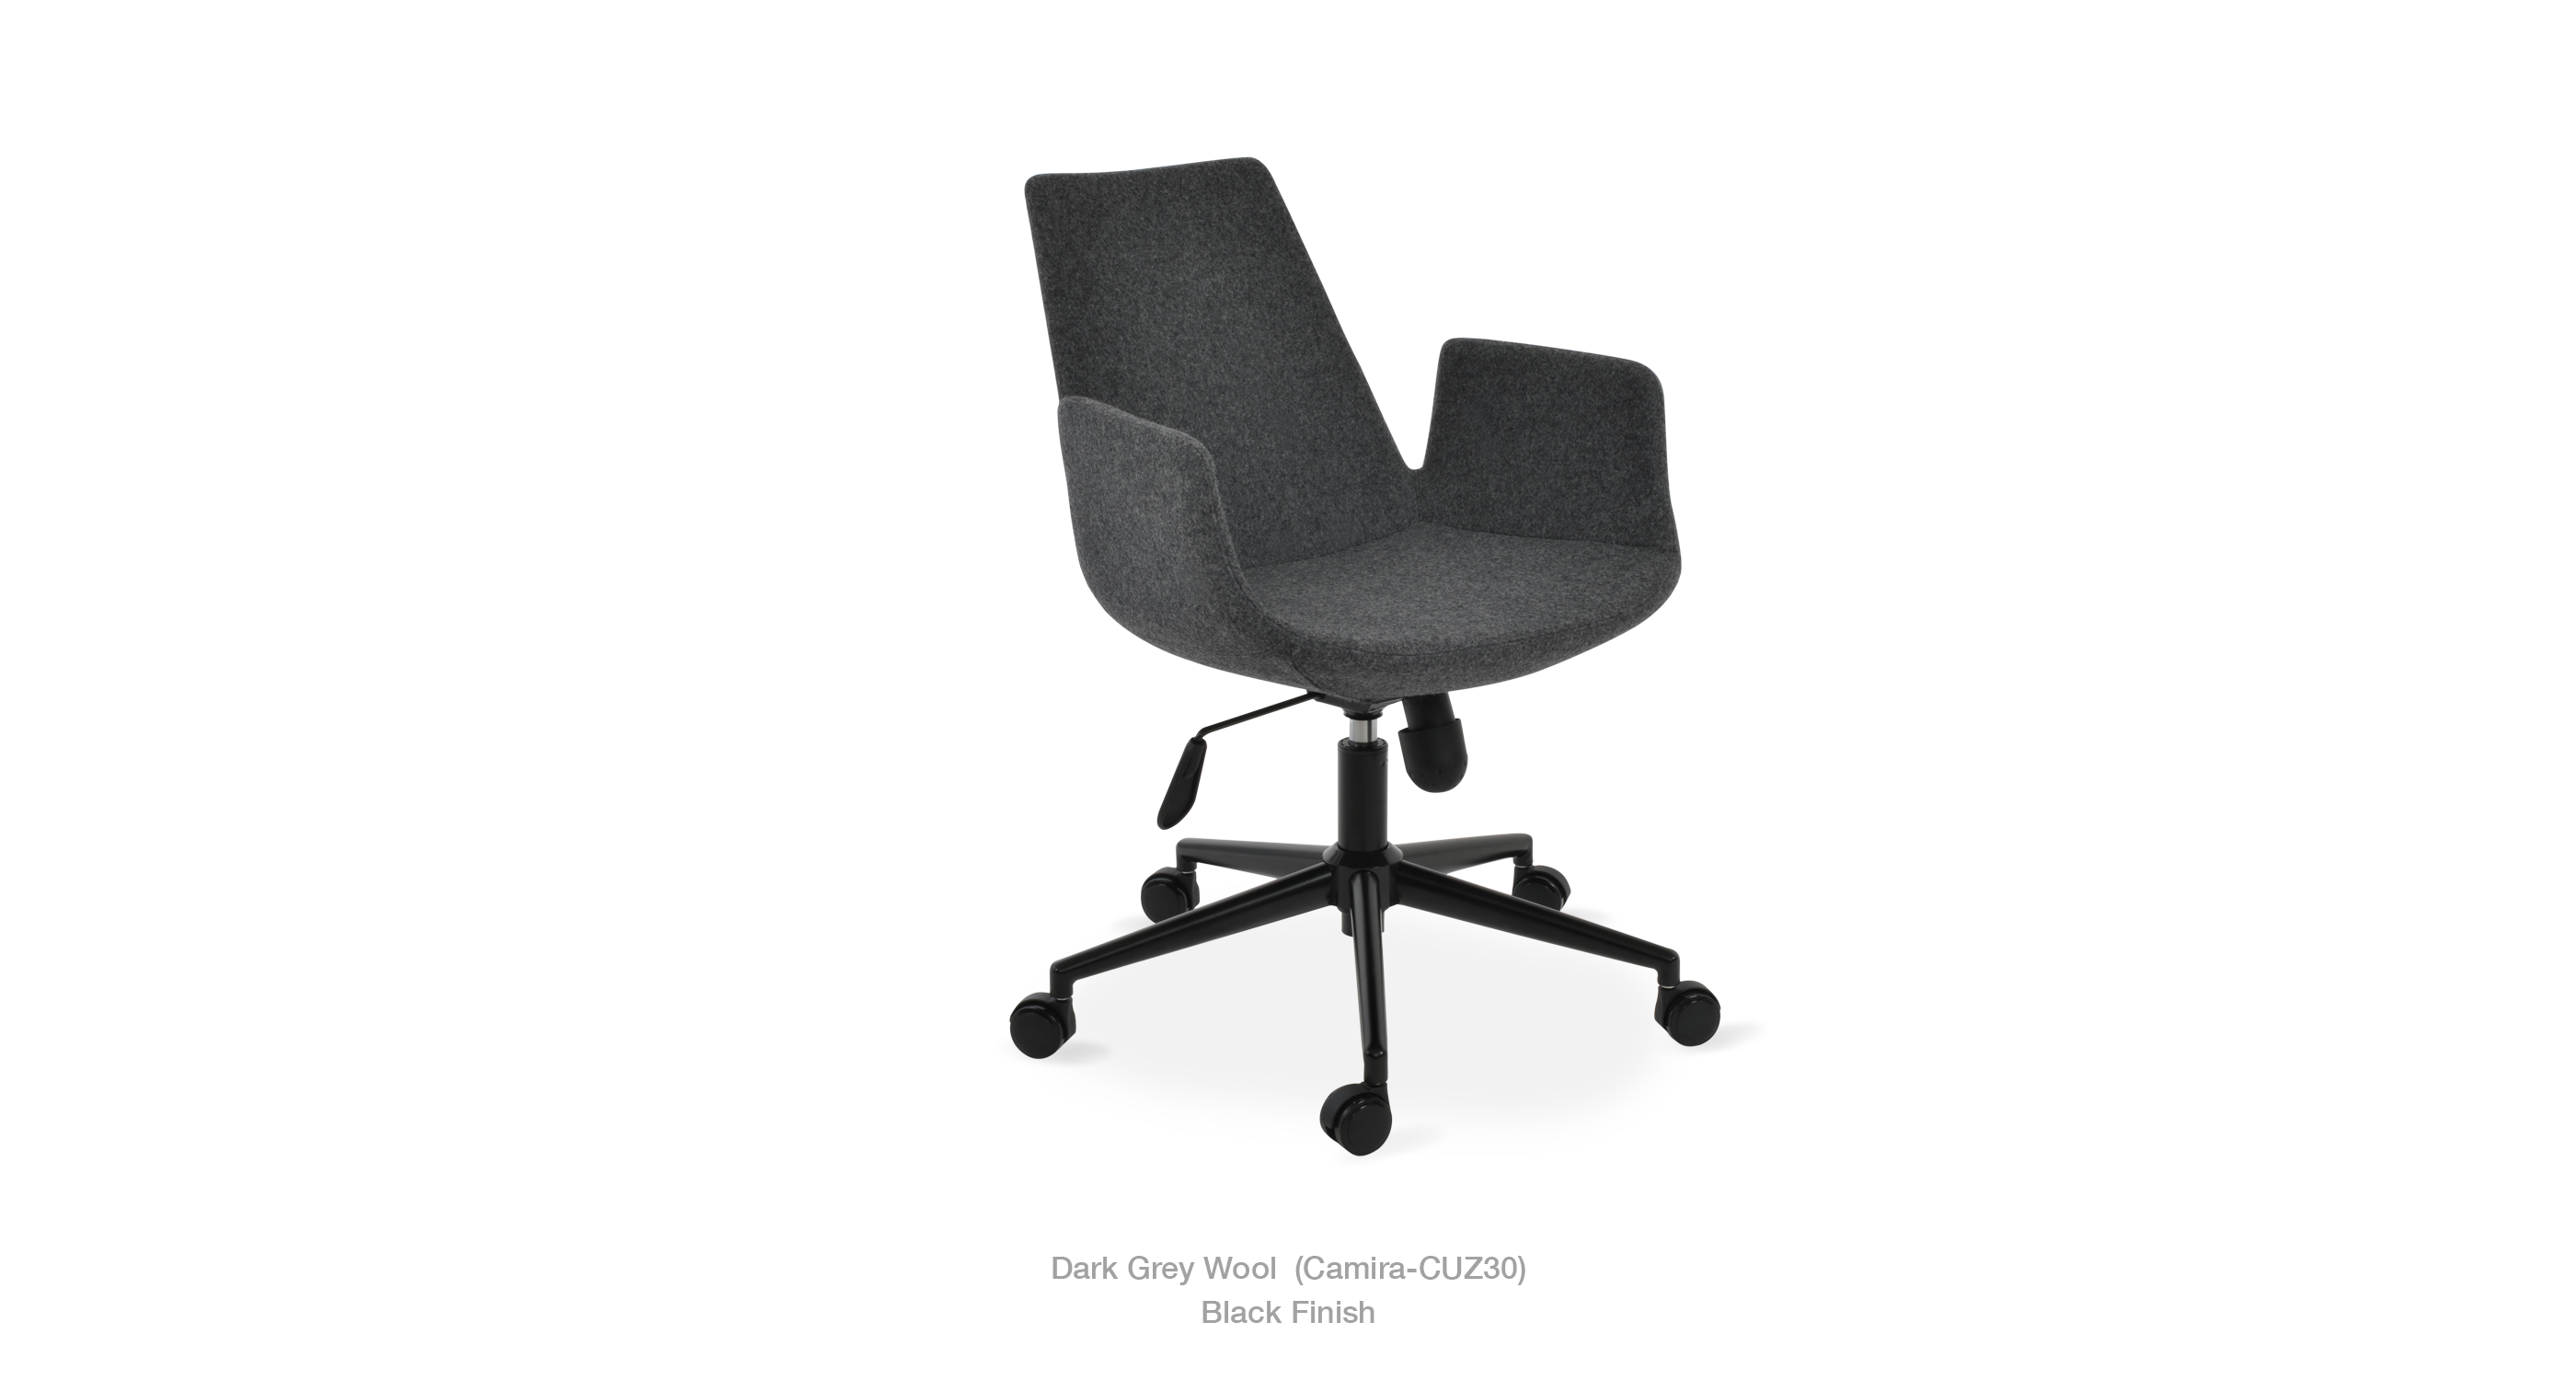 2020 03 15 Eiffel Arm Office Dark Grey Wool Black